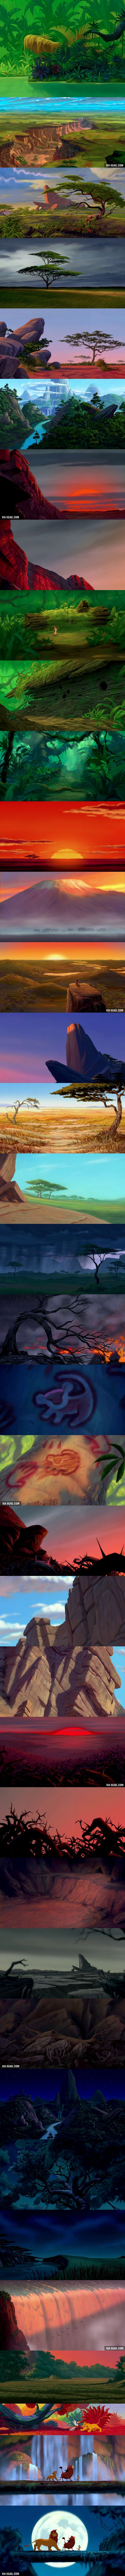 Background Art of The Lion King. I like the greenery vs. the all orangy yellowy looks.